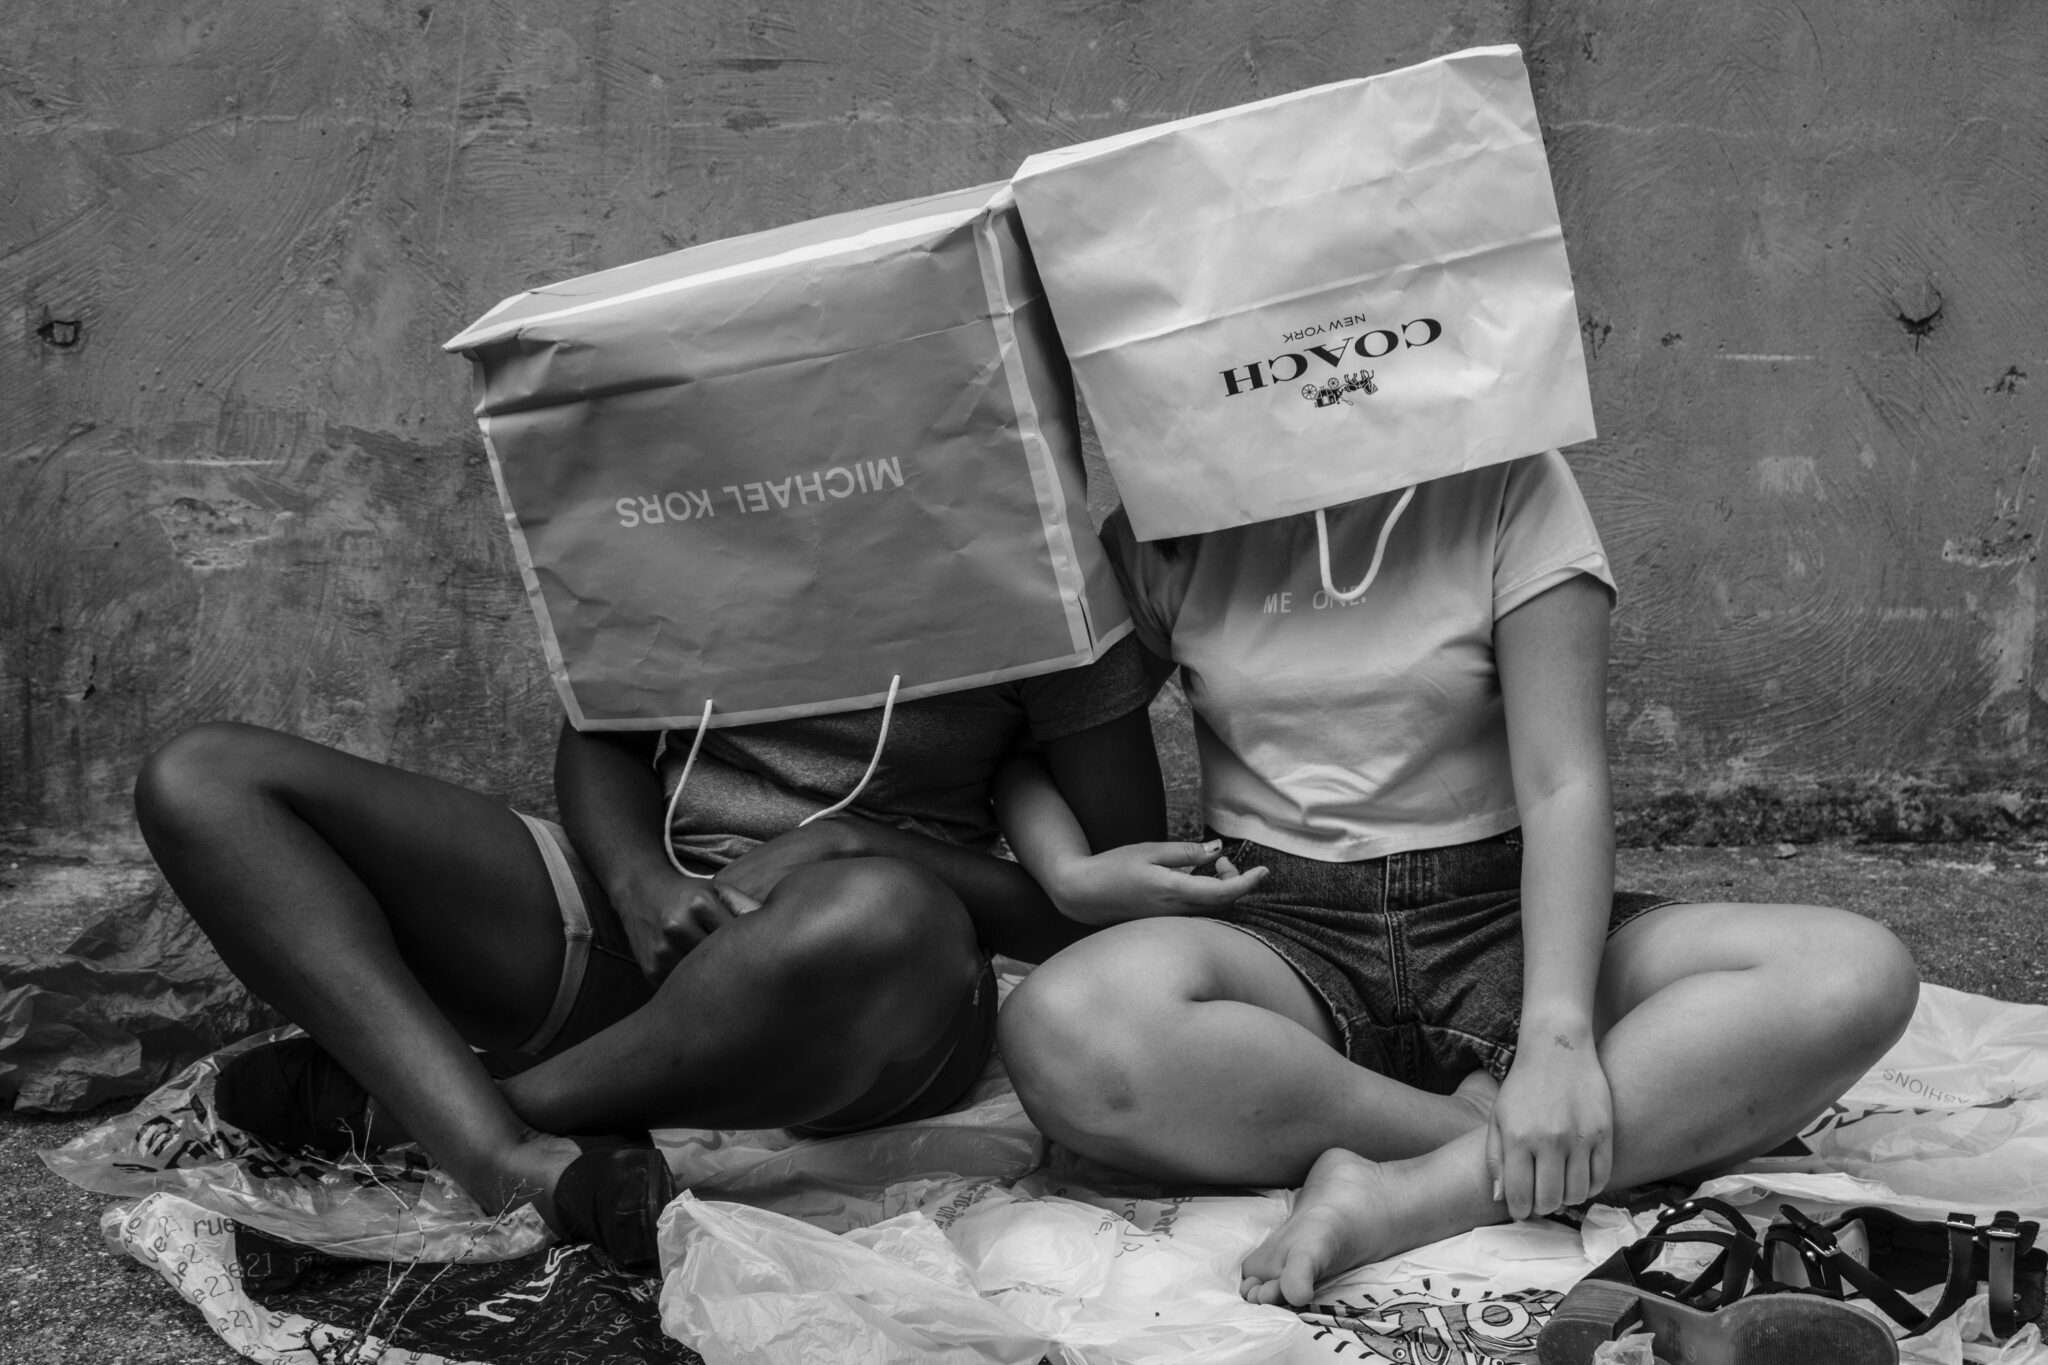 black and white girls with shopping bags on their heads consumerism too much buying